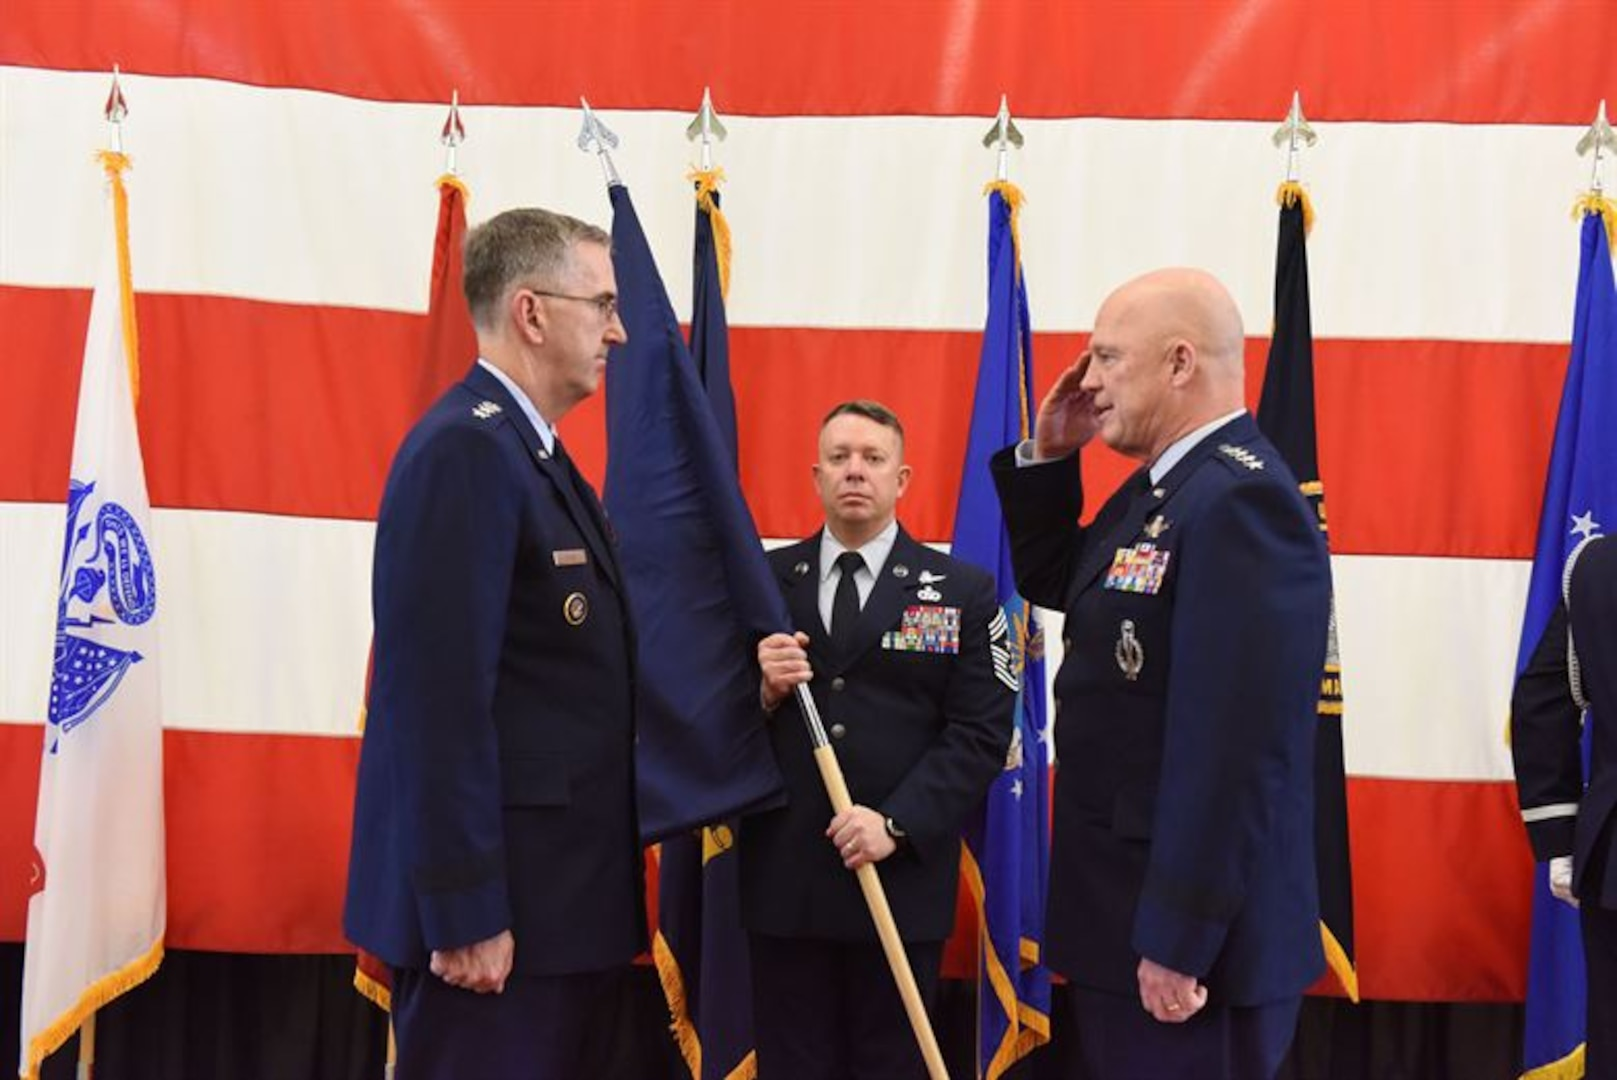 Air Force Gen. Jay Raymond, commander of Air Force Space Command, salutes Air Force Gen. John Hyten, commander of U.S. Strategic Command, during a ceremony at Vandenberg Air Force Base, Calif., Dec. 1, 2017. Raymond became the Joint Force Space Component commander taking operational responsibility for employment of all joint space forces.